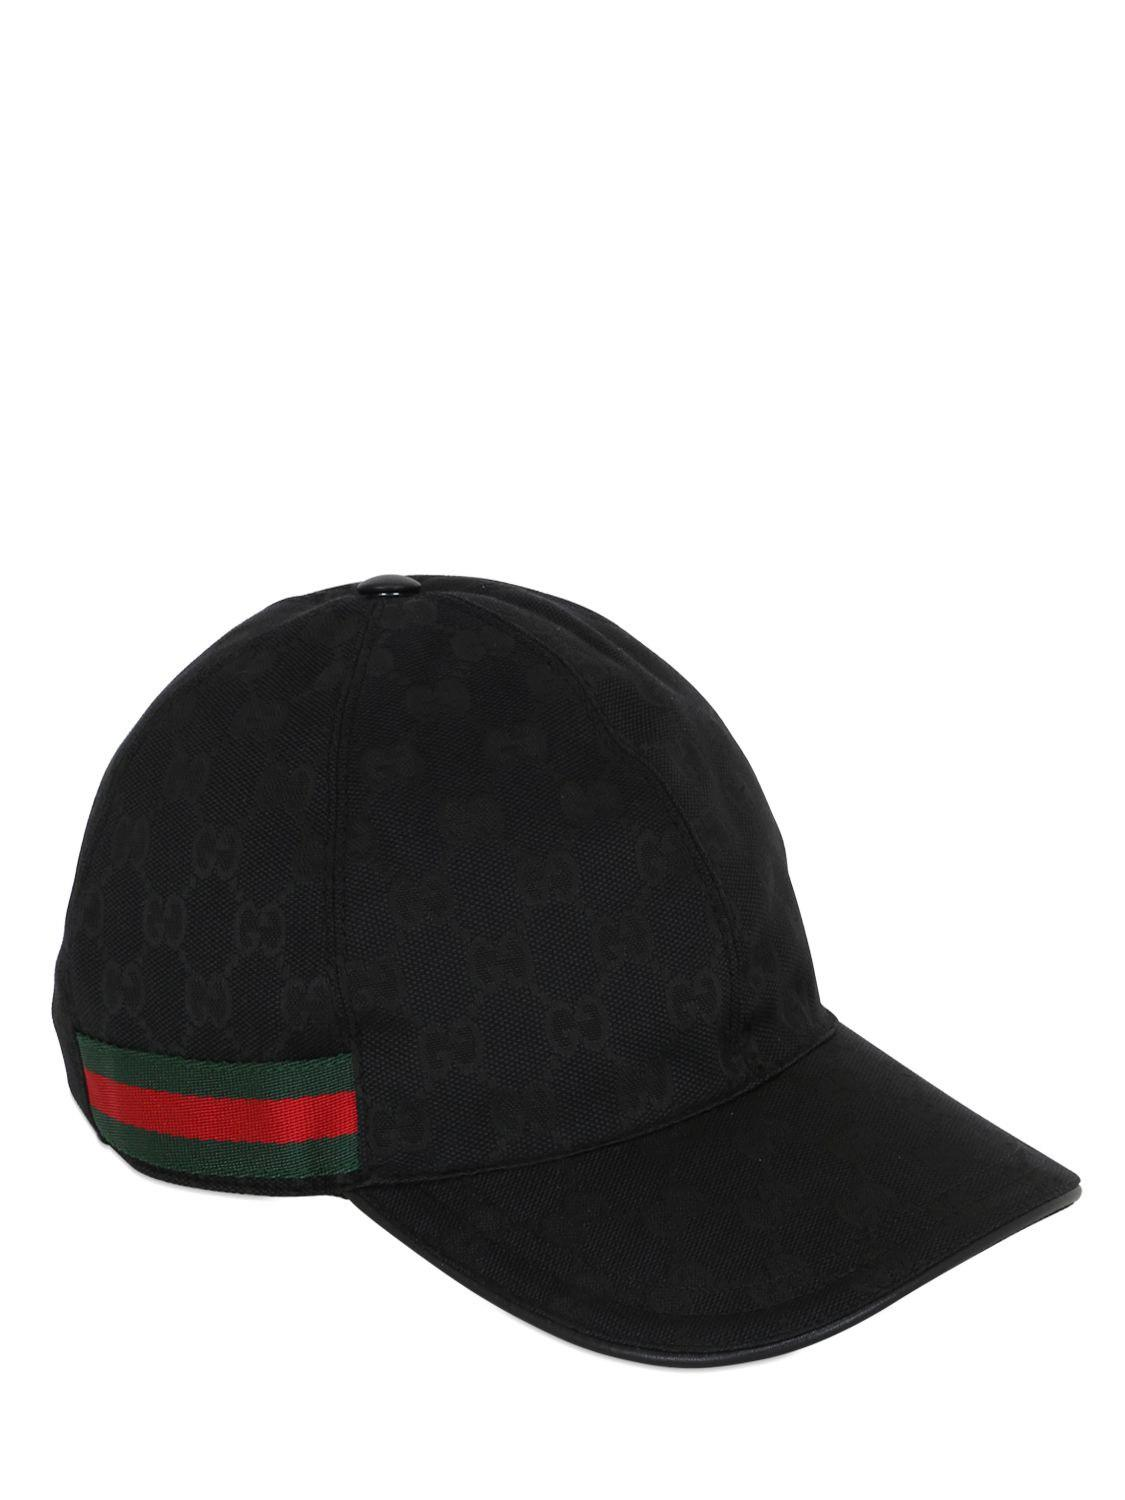 cfbe34c959ad4 Gucci Original GG Canvas Baseball Hat in Black for Men - Save 42% - Lyst